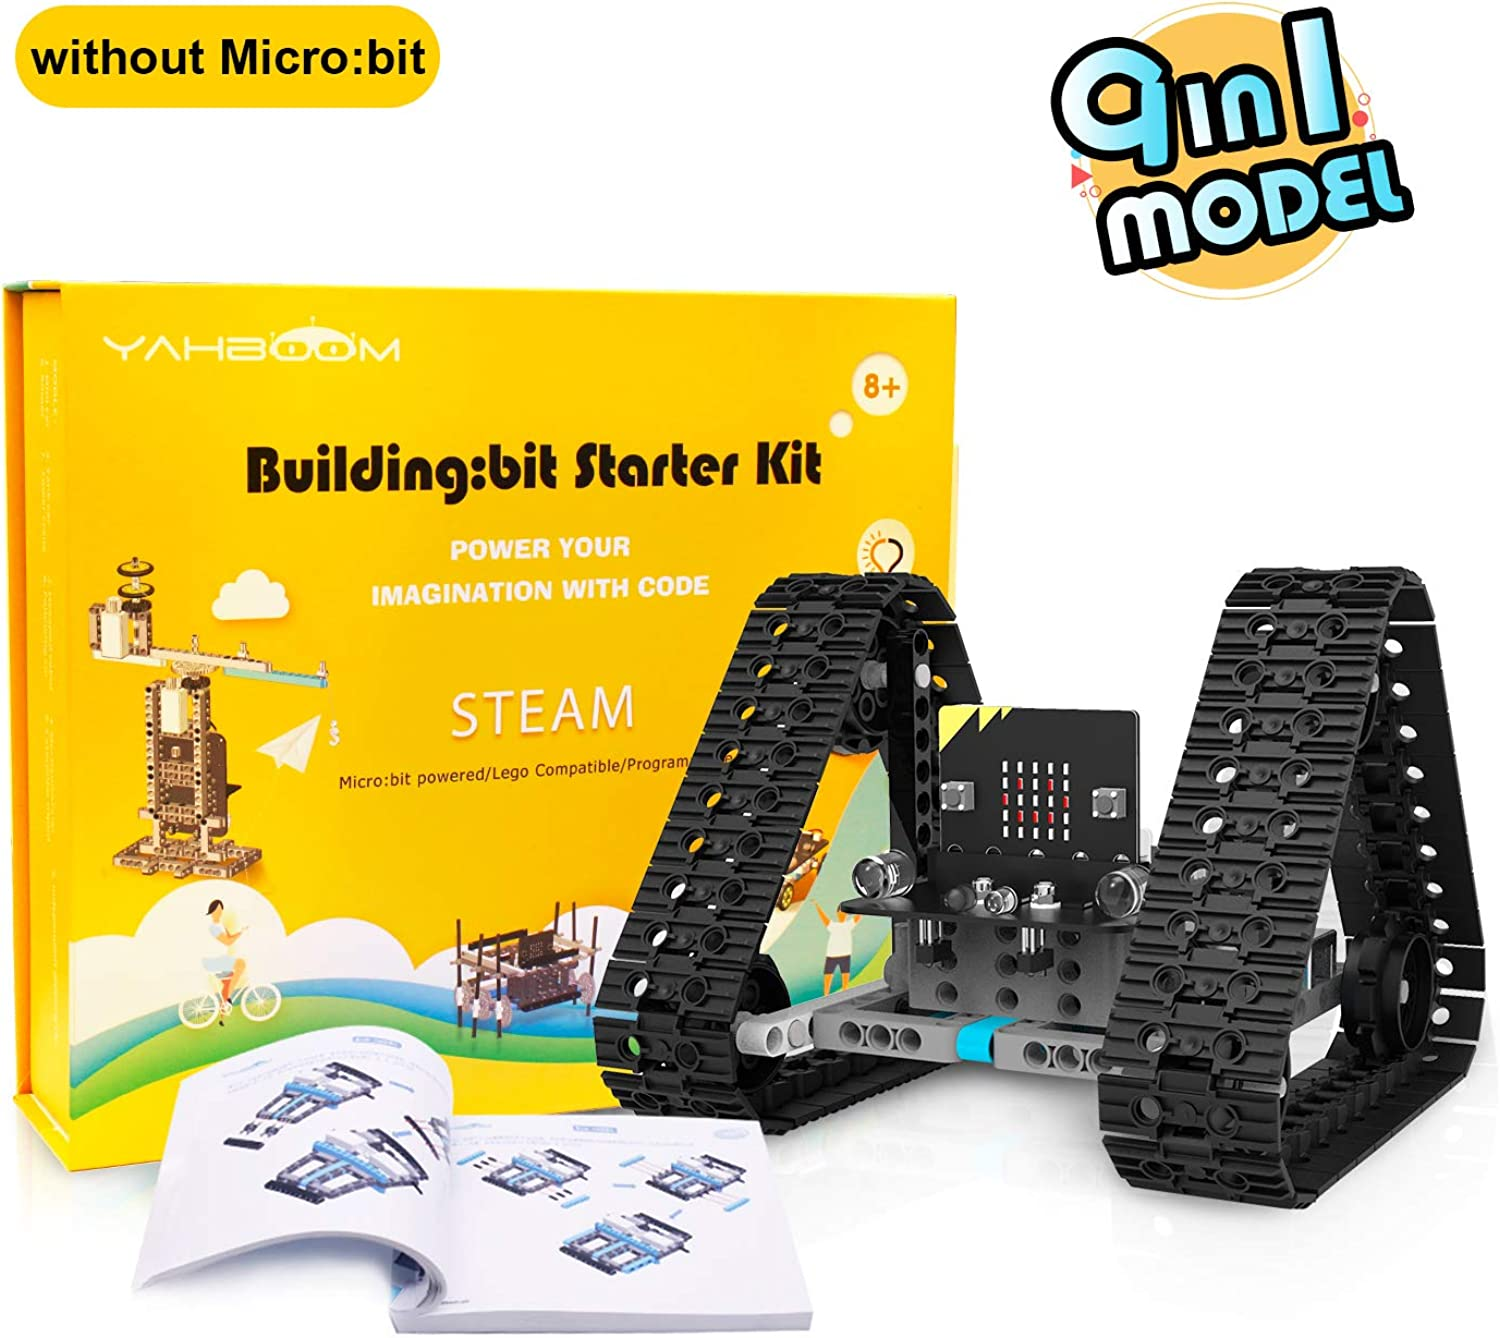 Yahboom Coding Building Blocks 9 in 1 Robot Kit for Kids Micro bit BBC DIY Programmable Robotics STEM Education Learn Coding Toy for 8+(260 Pieces Without Micro bit Board)